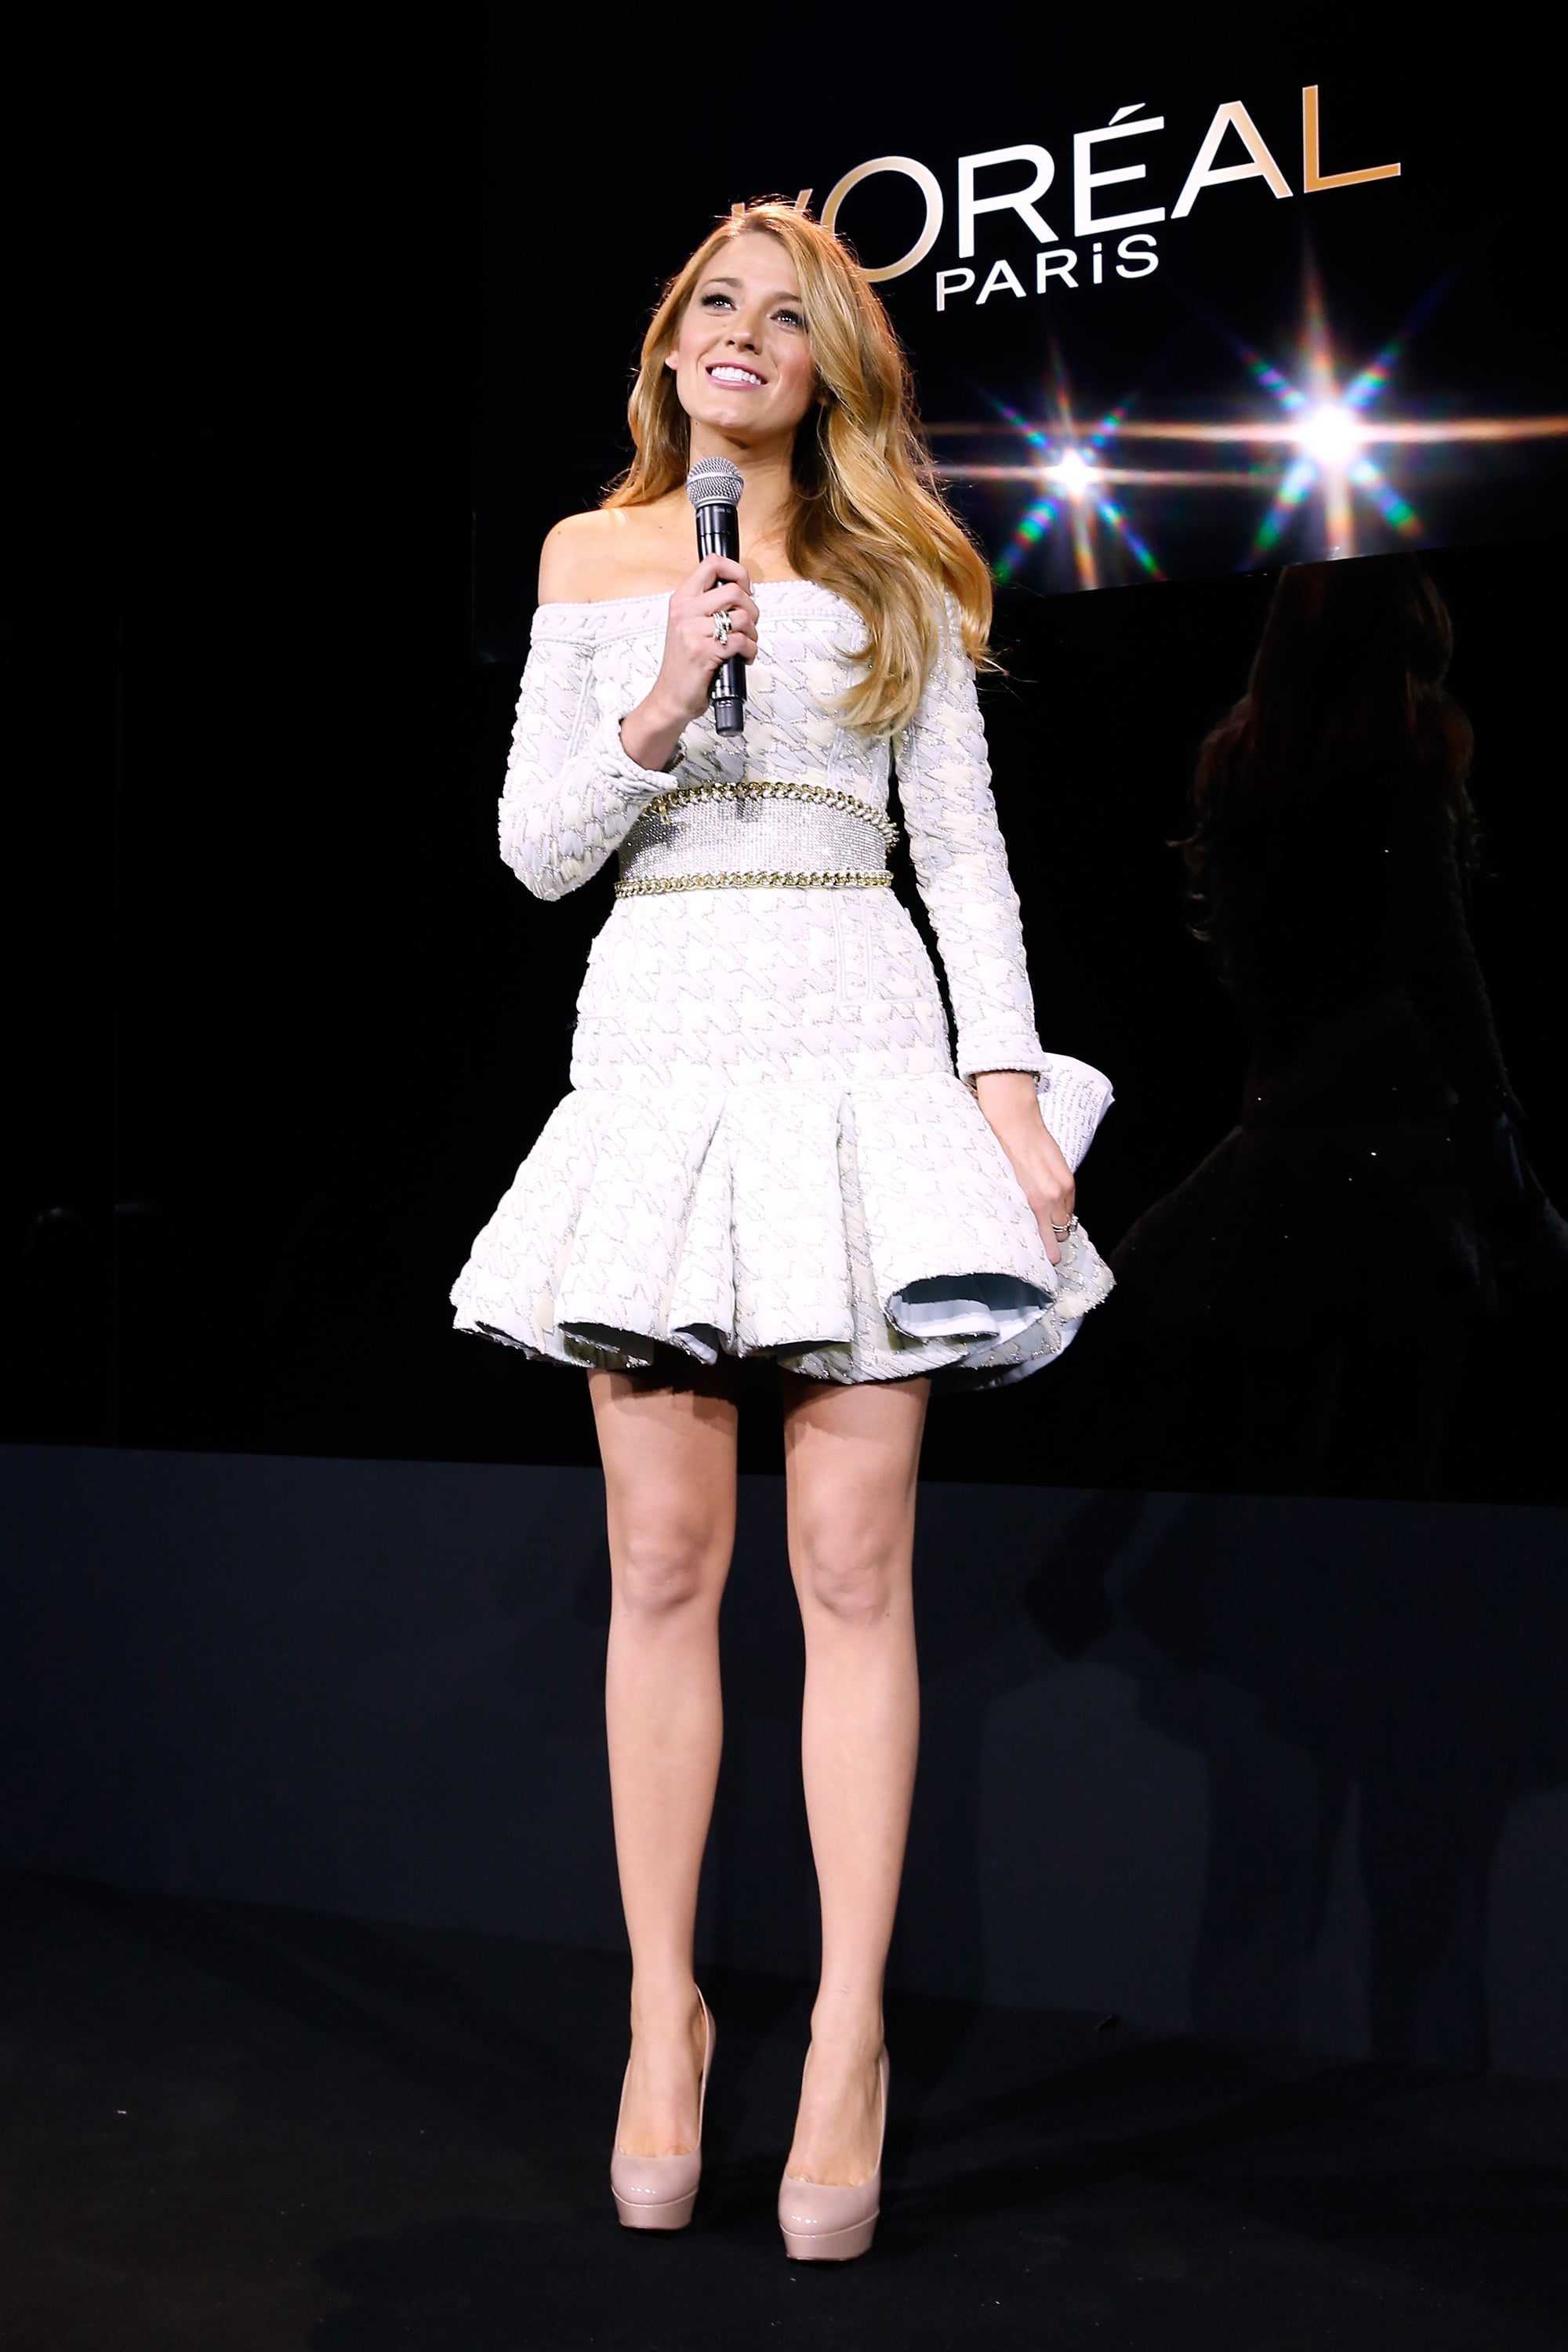 Blake Lively spoke on stage while being announced as the new face of L'Oréal in Paris on Tuesday.